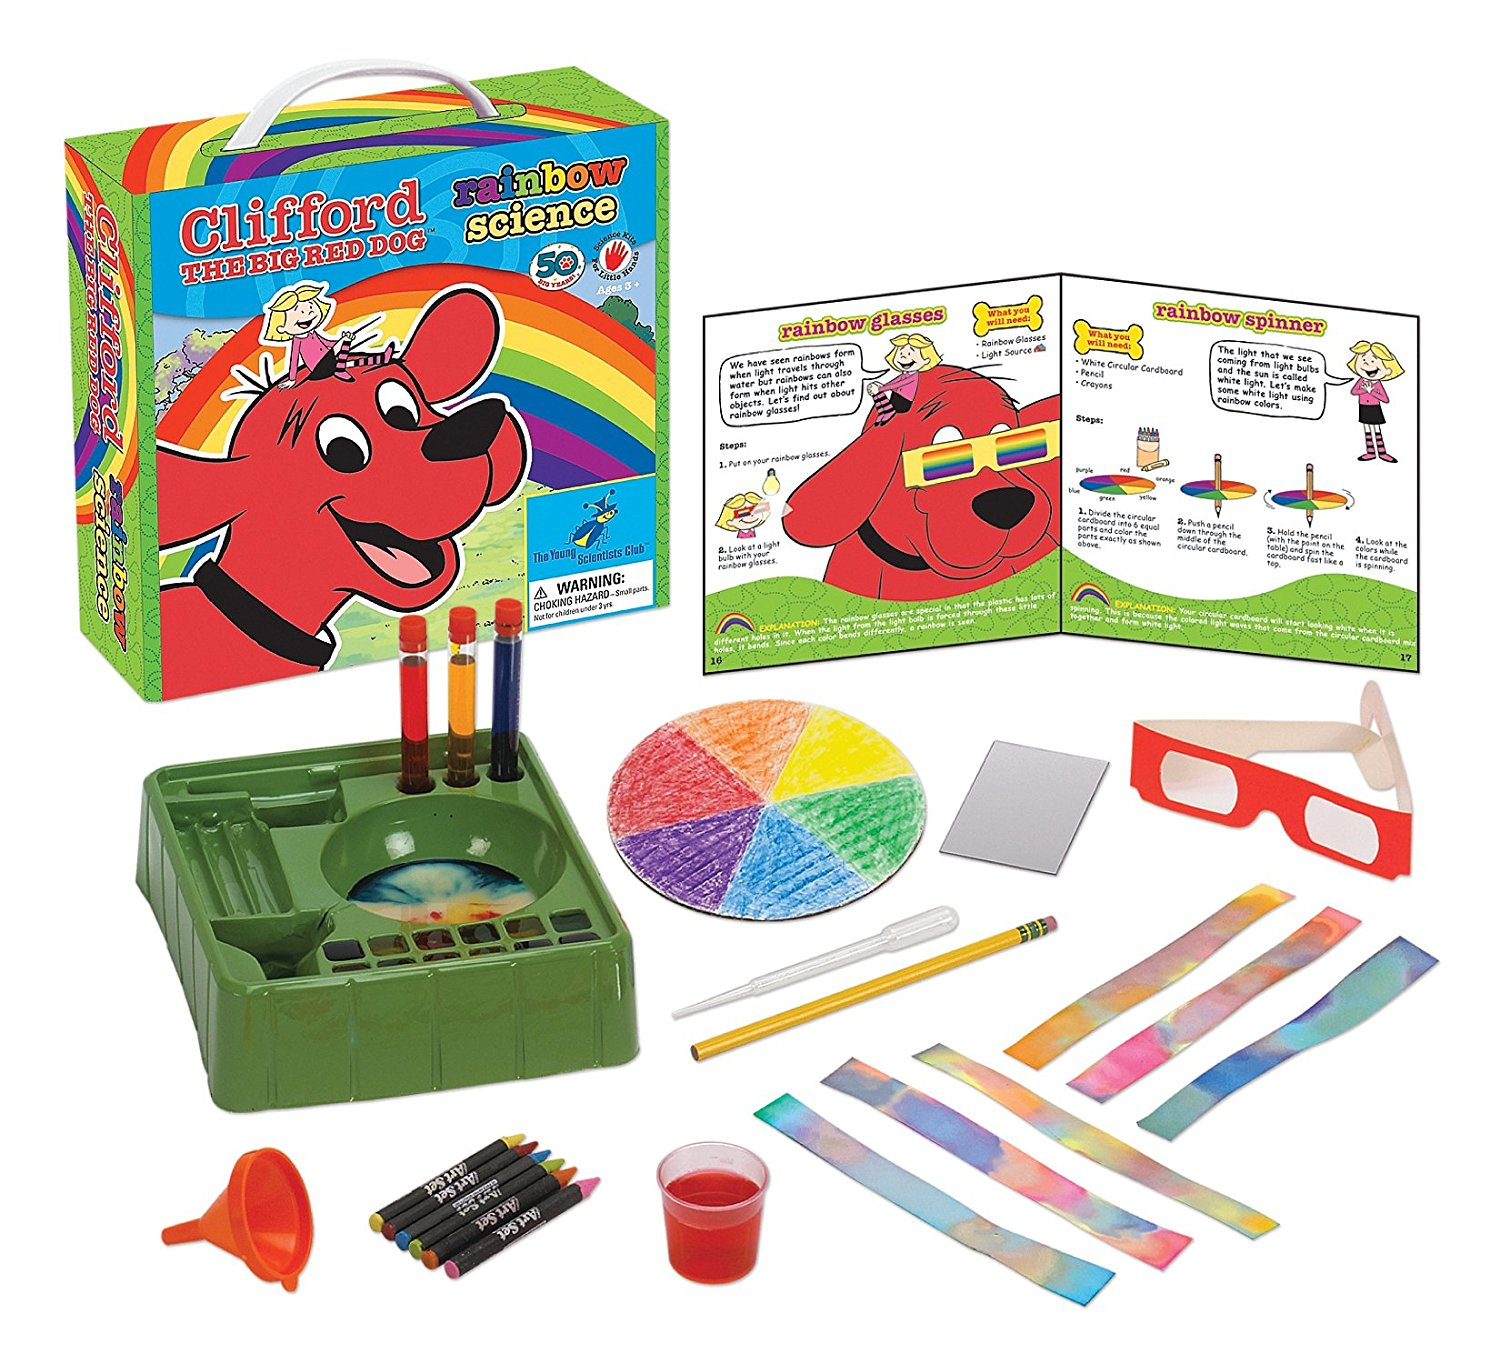 Young Scientist Club Rainbow Science with Clifford The Big Red Dog